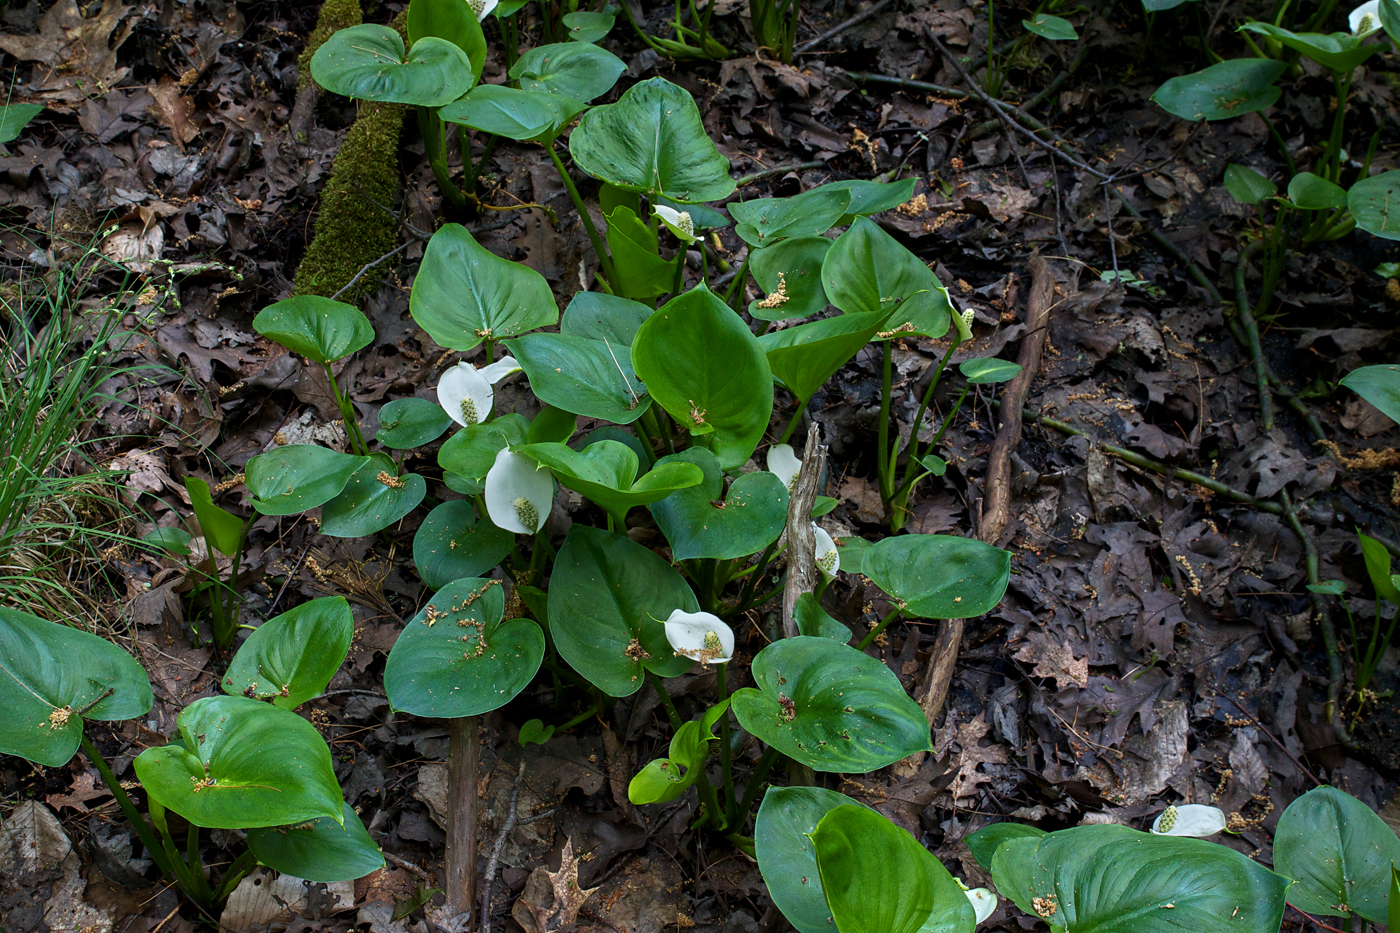 Garden in the Woods, Wild Calla, by Justine Hand for Gardenista